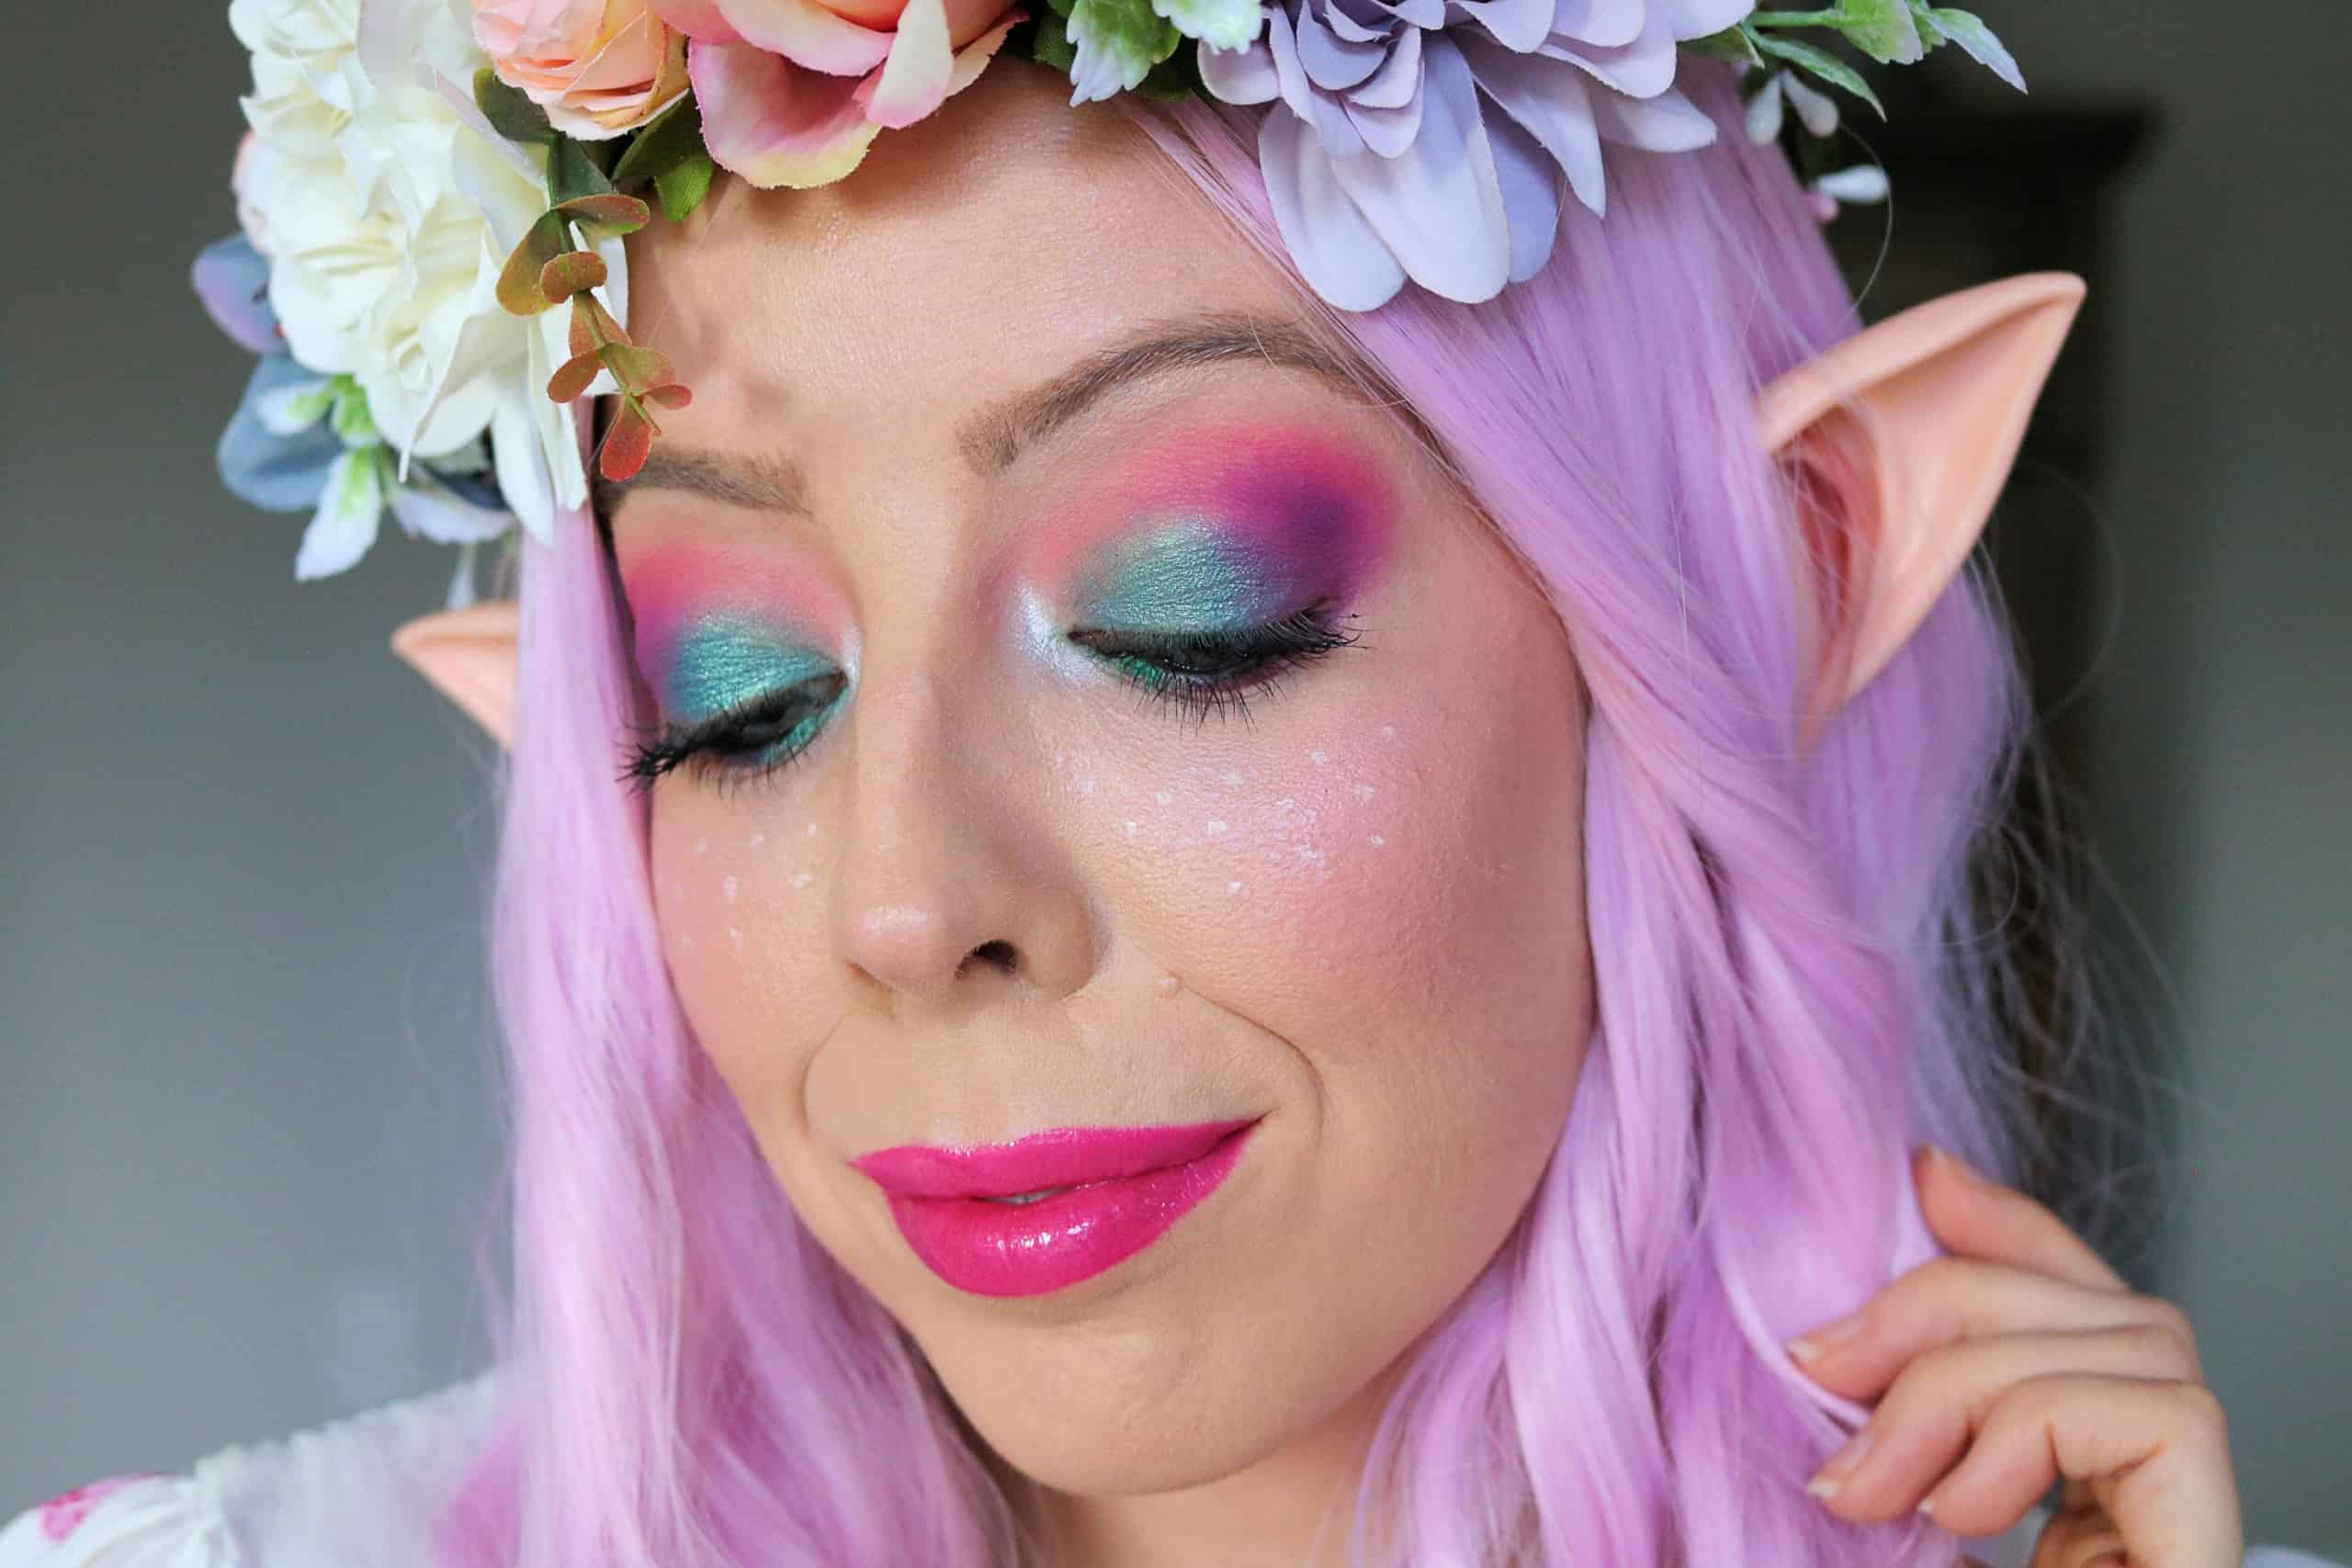 Turn yourself into a beautiful, magical garden fairy this year with my Colorful Fairy Makeup Halloween Tutorial & DIY Fairy Halloween Costume. This Fairy Makeup look is both fun and easy to create and features a bright pink, purple, and turquoise eyeshadow look, cute fairy freckles, and glowing skin. #fairymakeup #fairycostume #halloweenmakeup #makeuptutorial